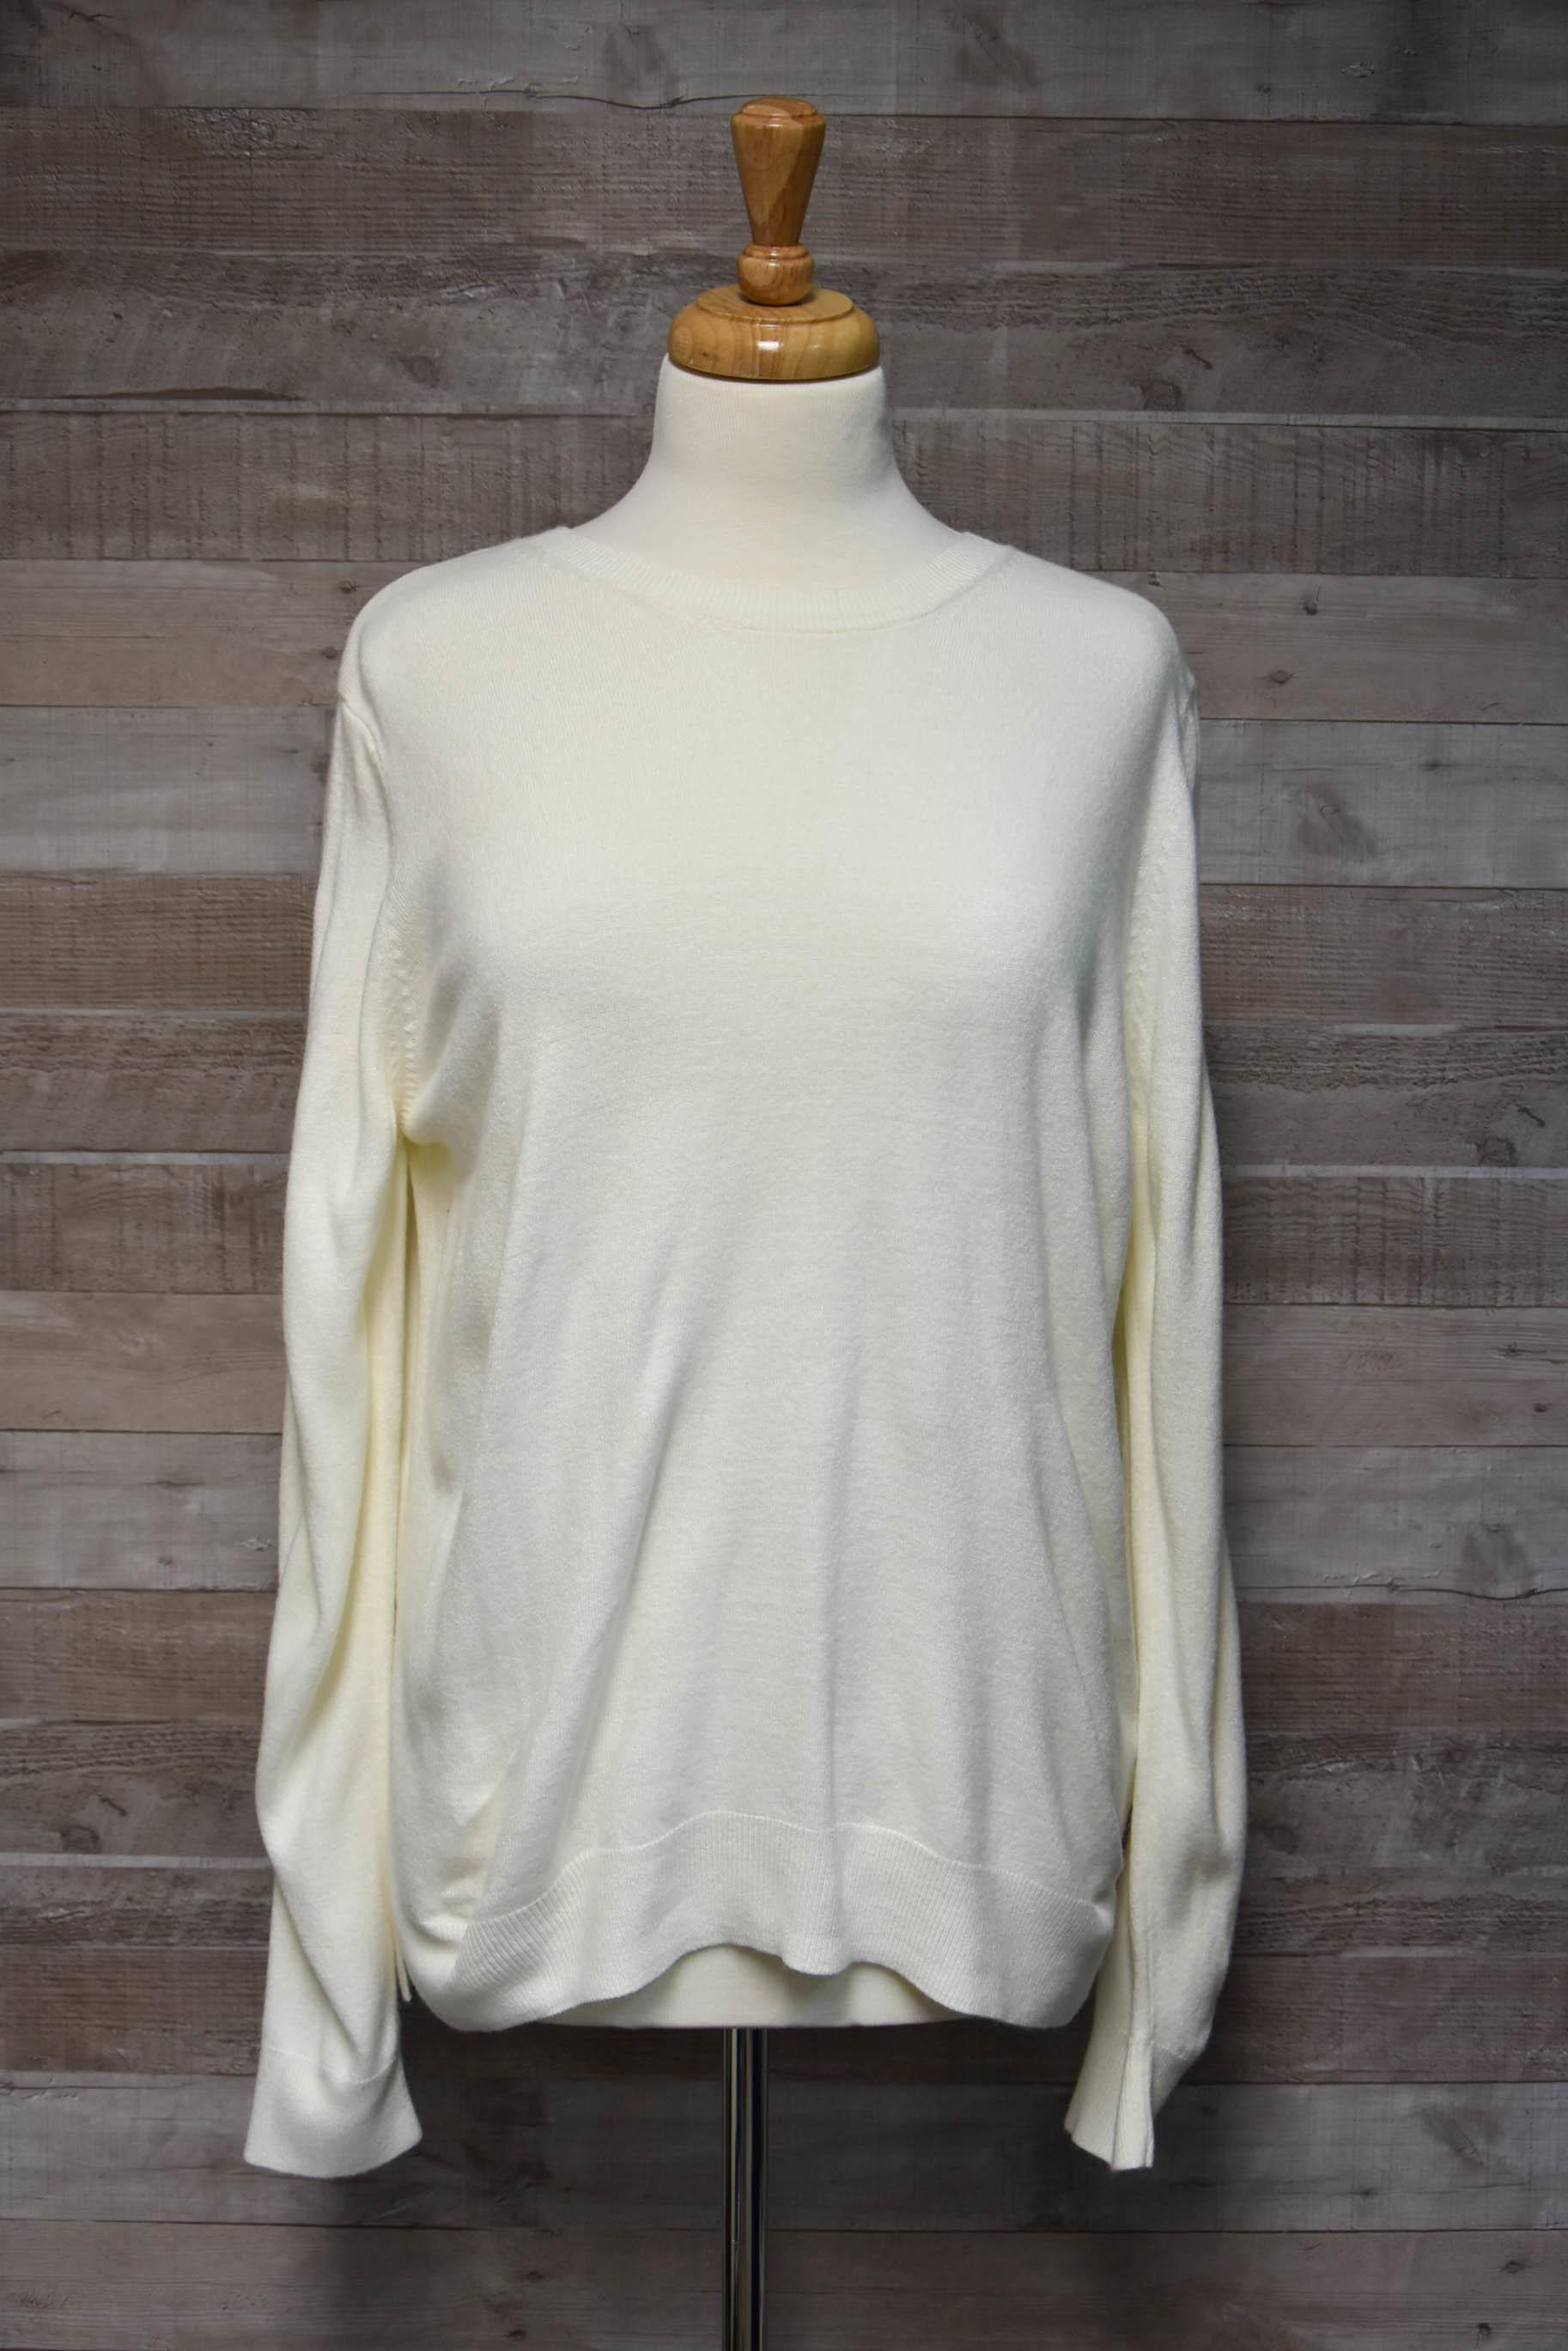 Marks and Spencers Cream Ladies Jumper Size 2027-01-2021 at 10.22.24